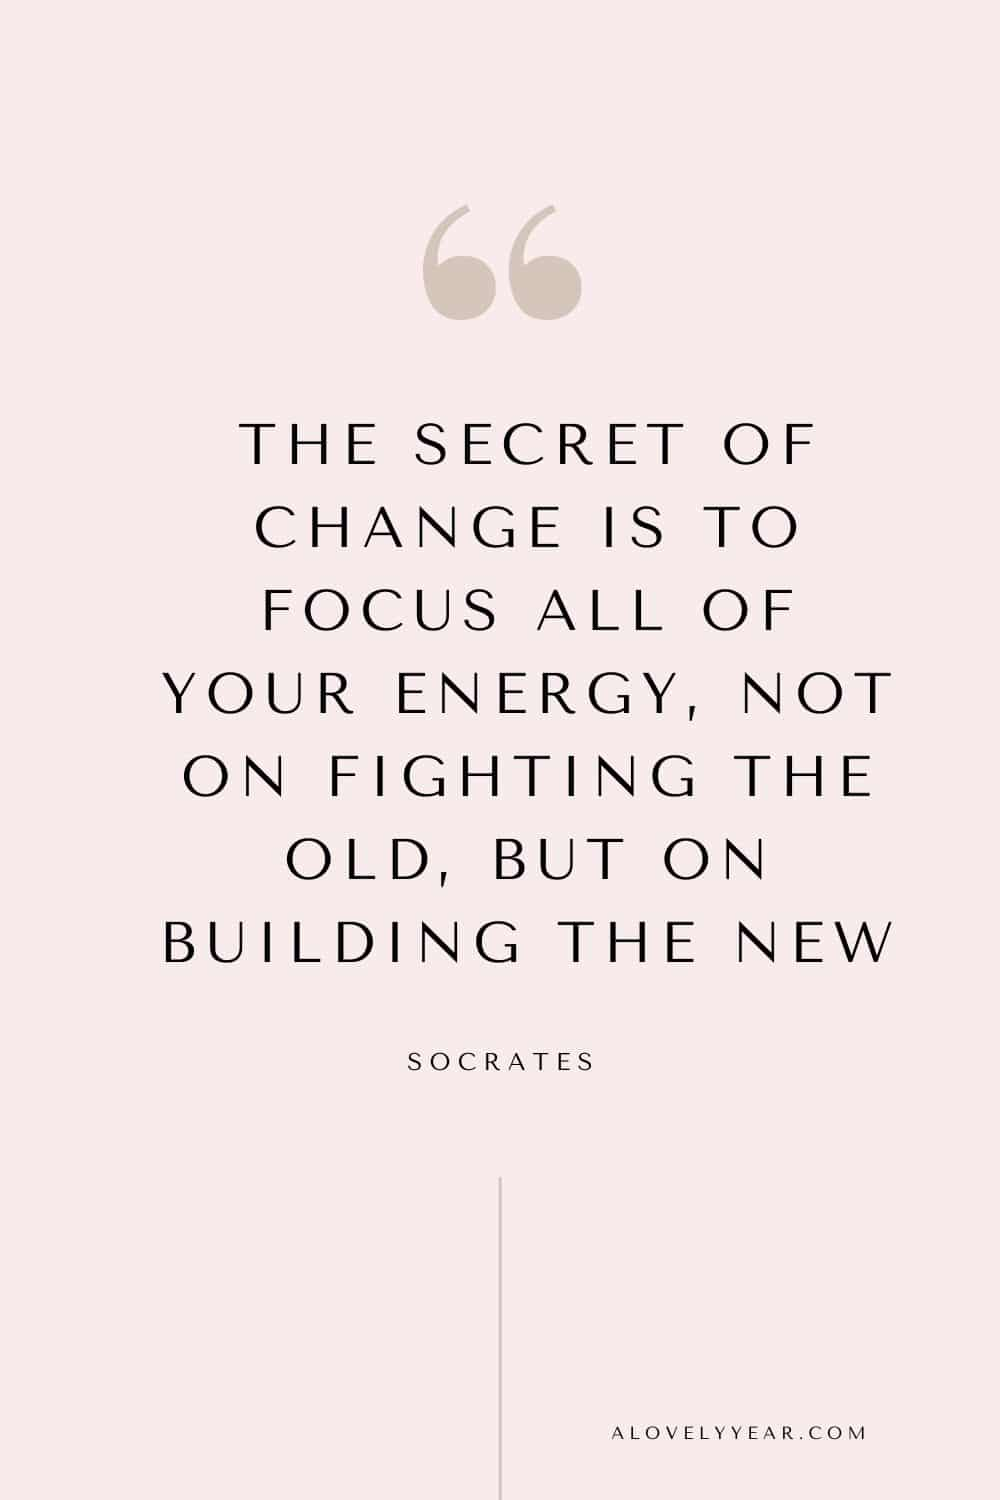 quote - The secret of change is to focus all of your energy, not on fighting the old, but on building the new. — Socrates